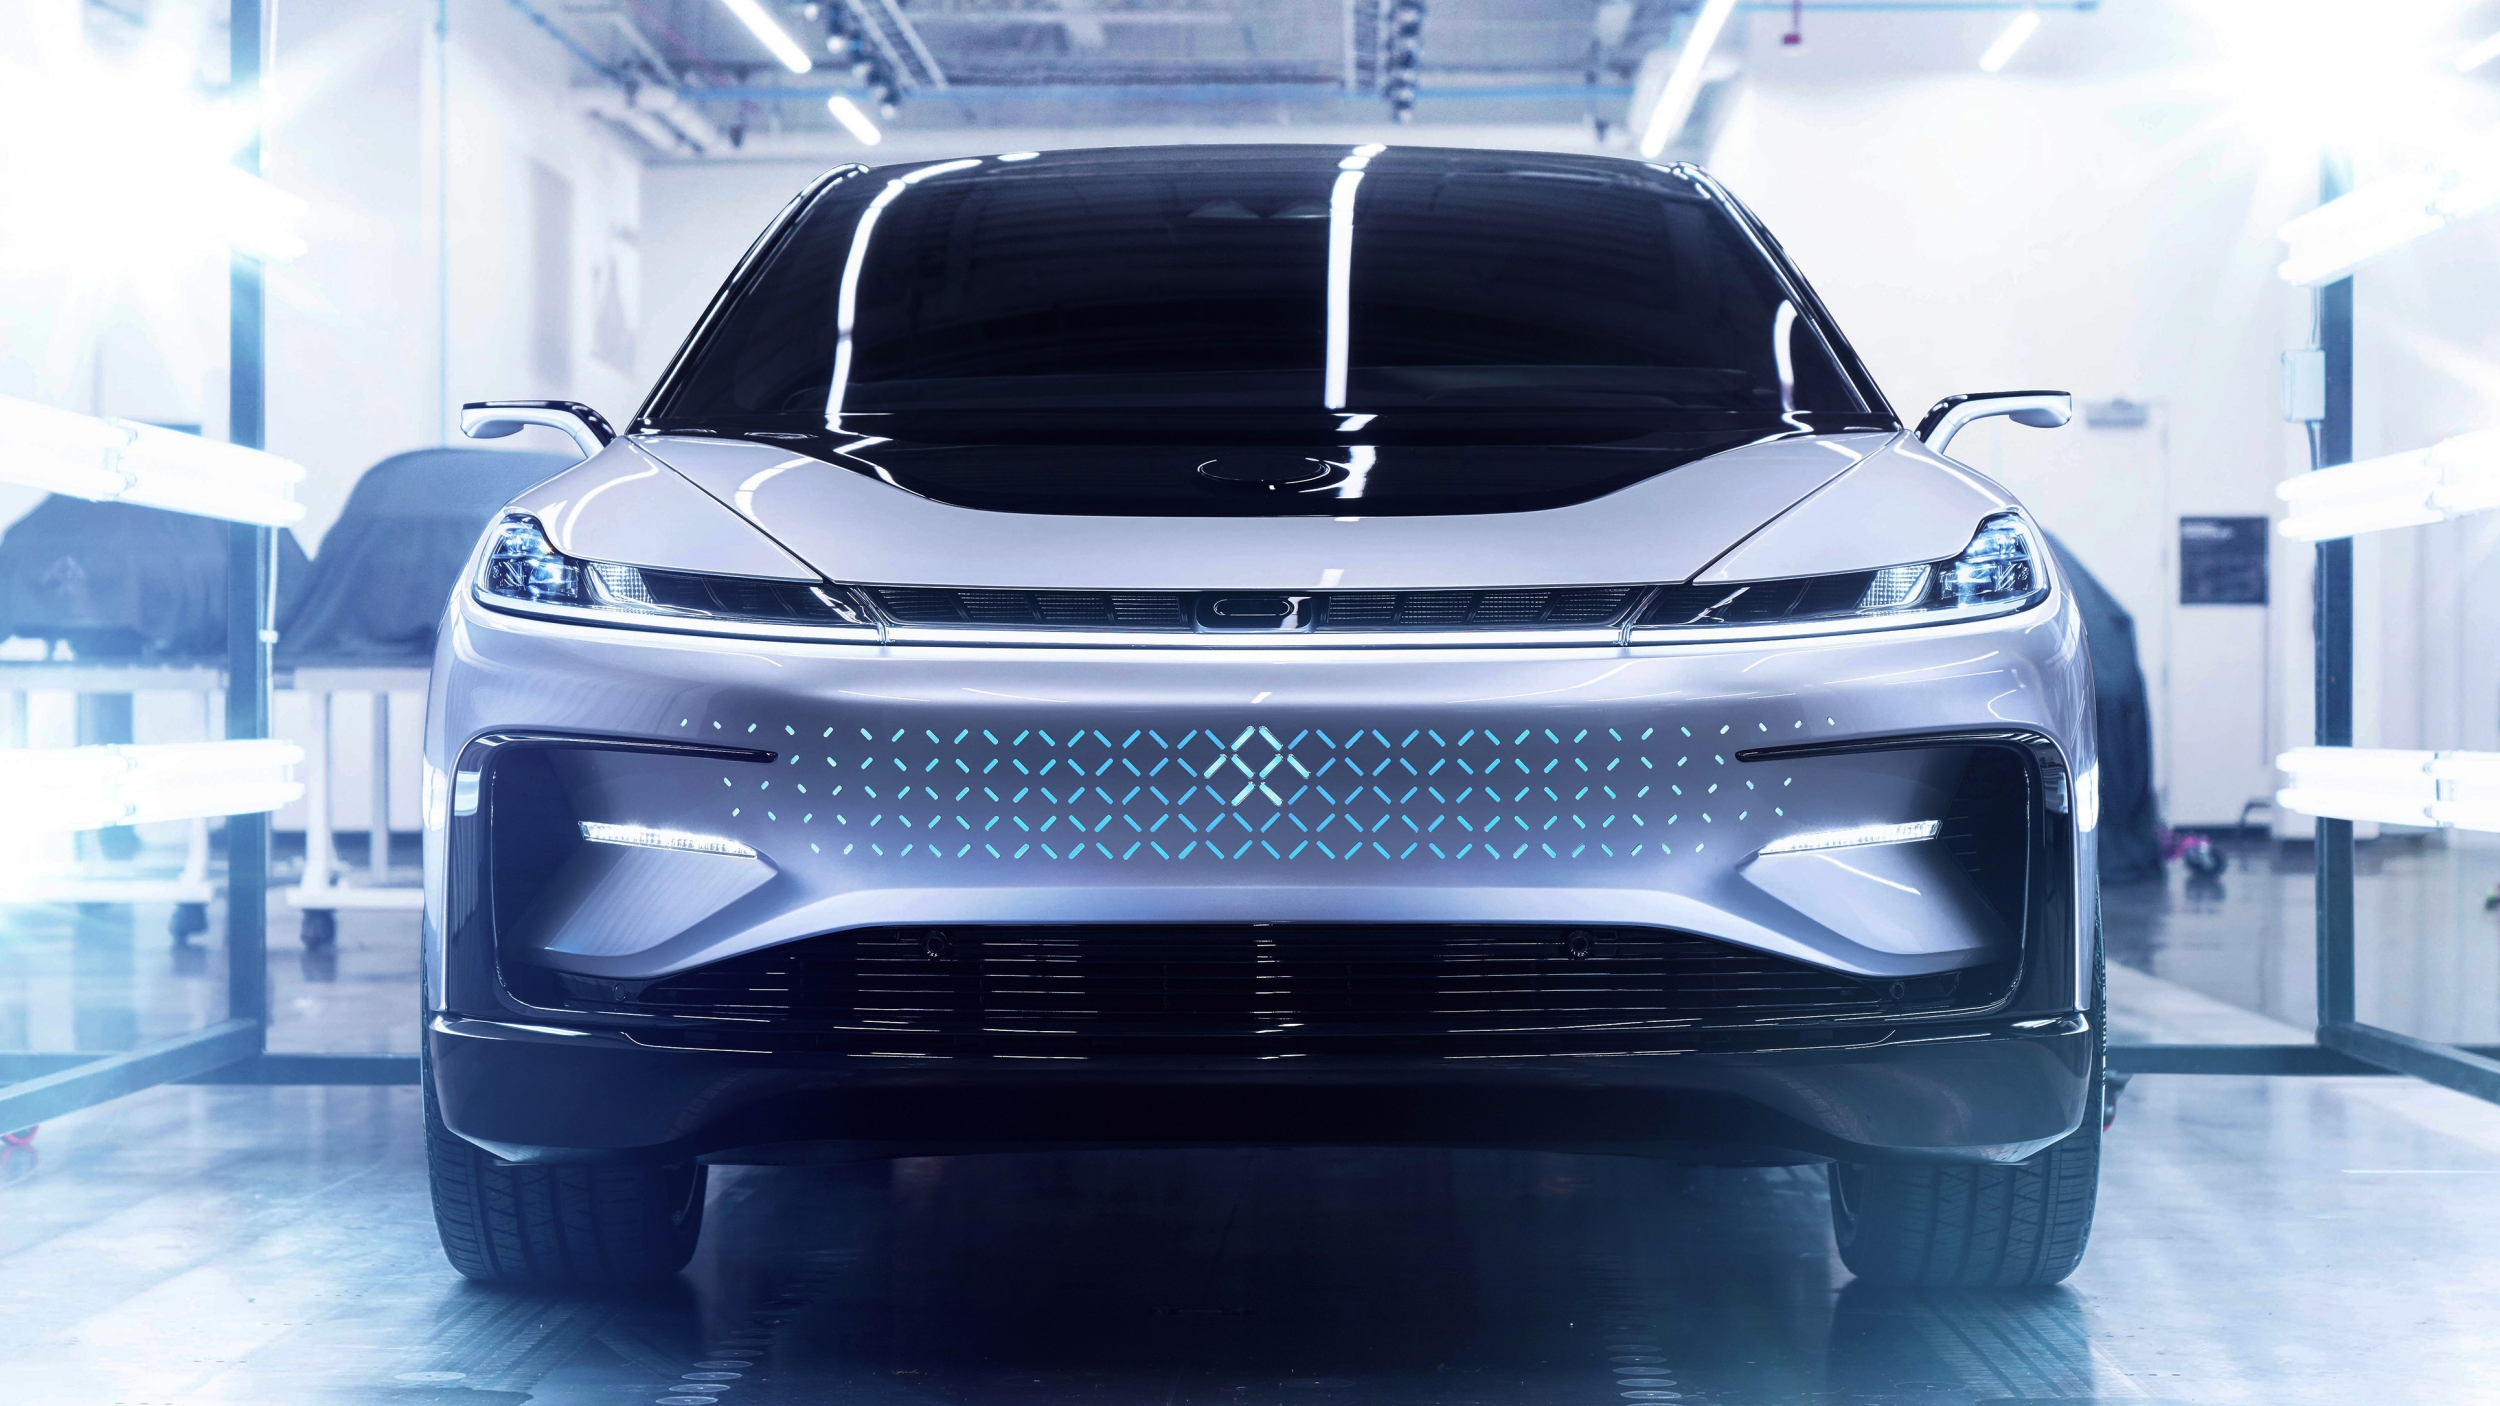 News - Faraday Future Loses Its Design Boss, Staff Won't Show Up